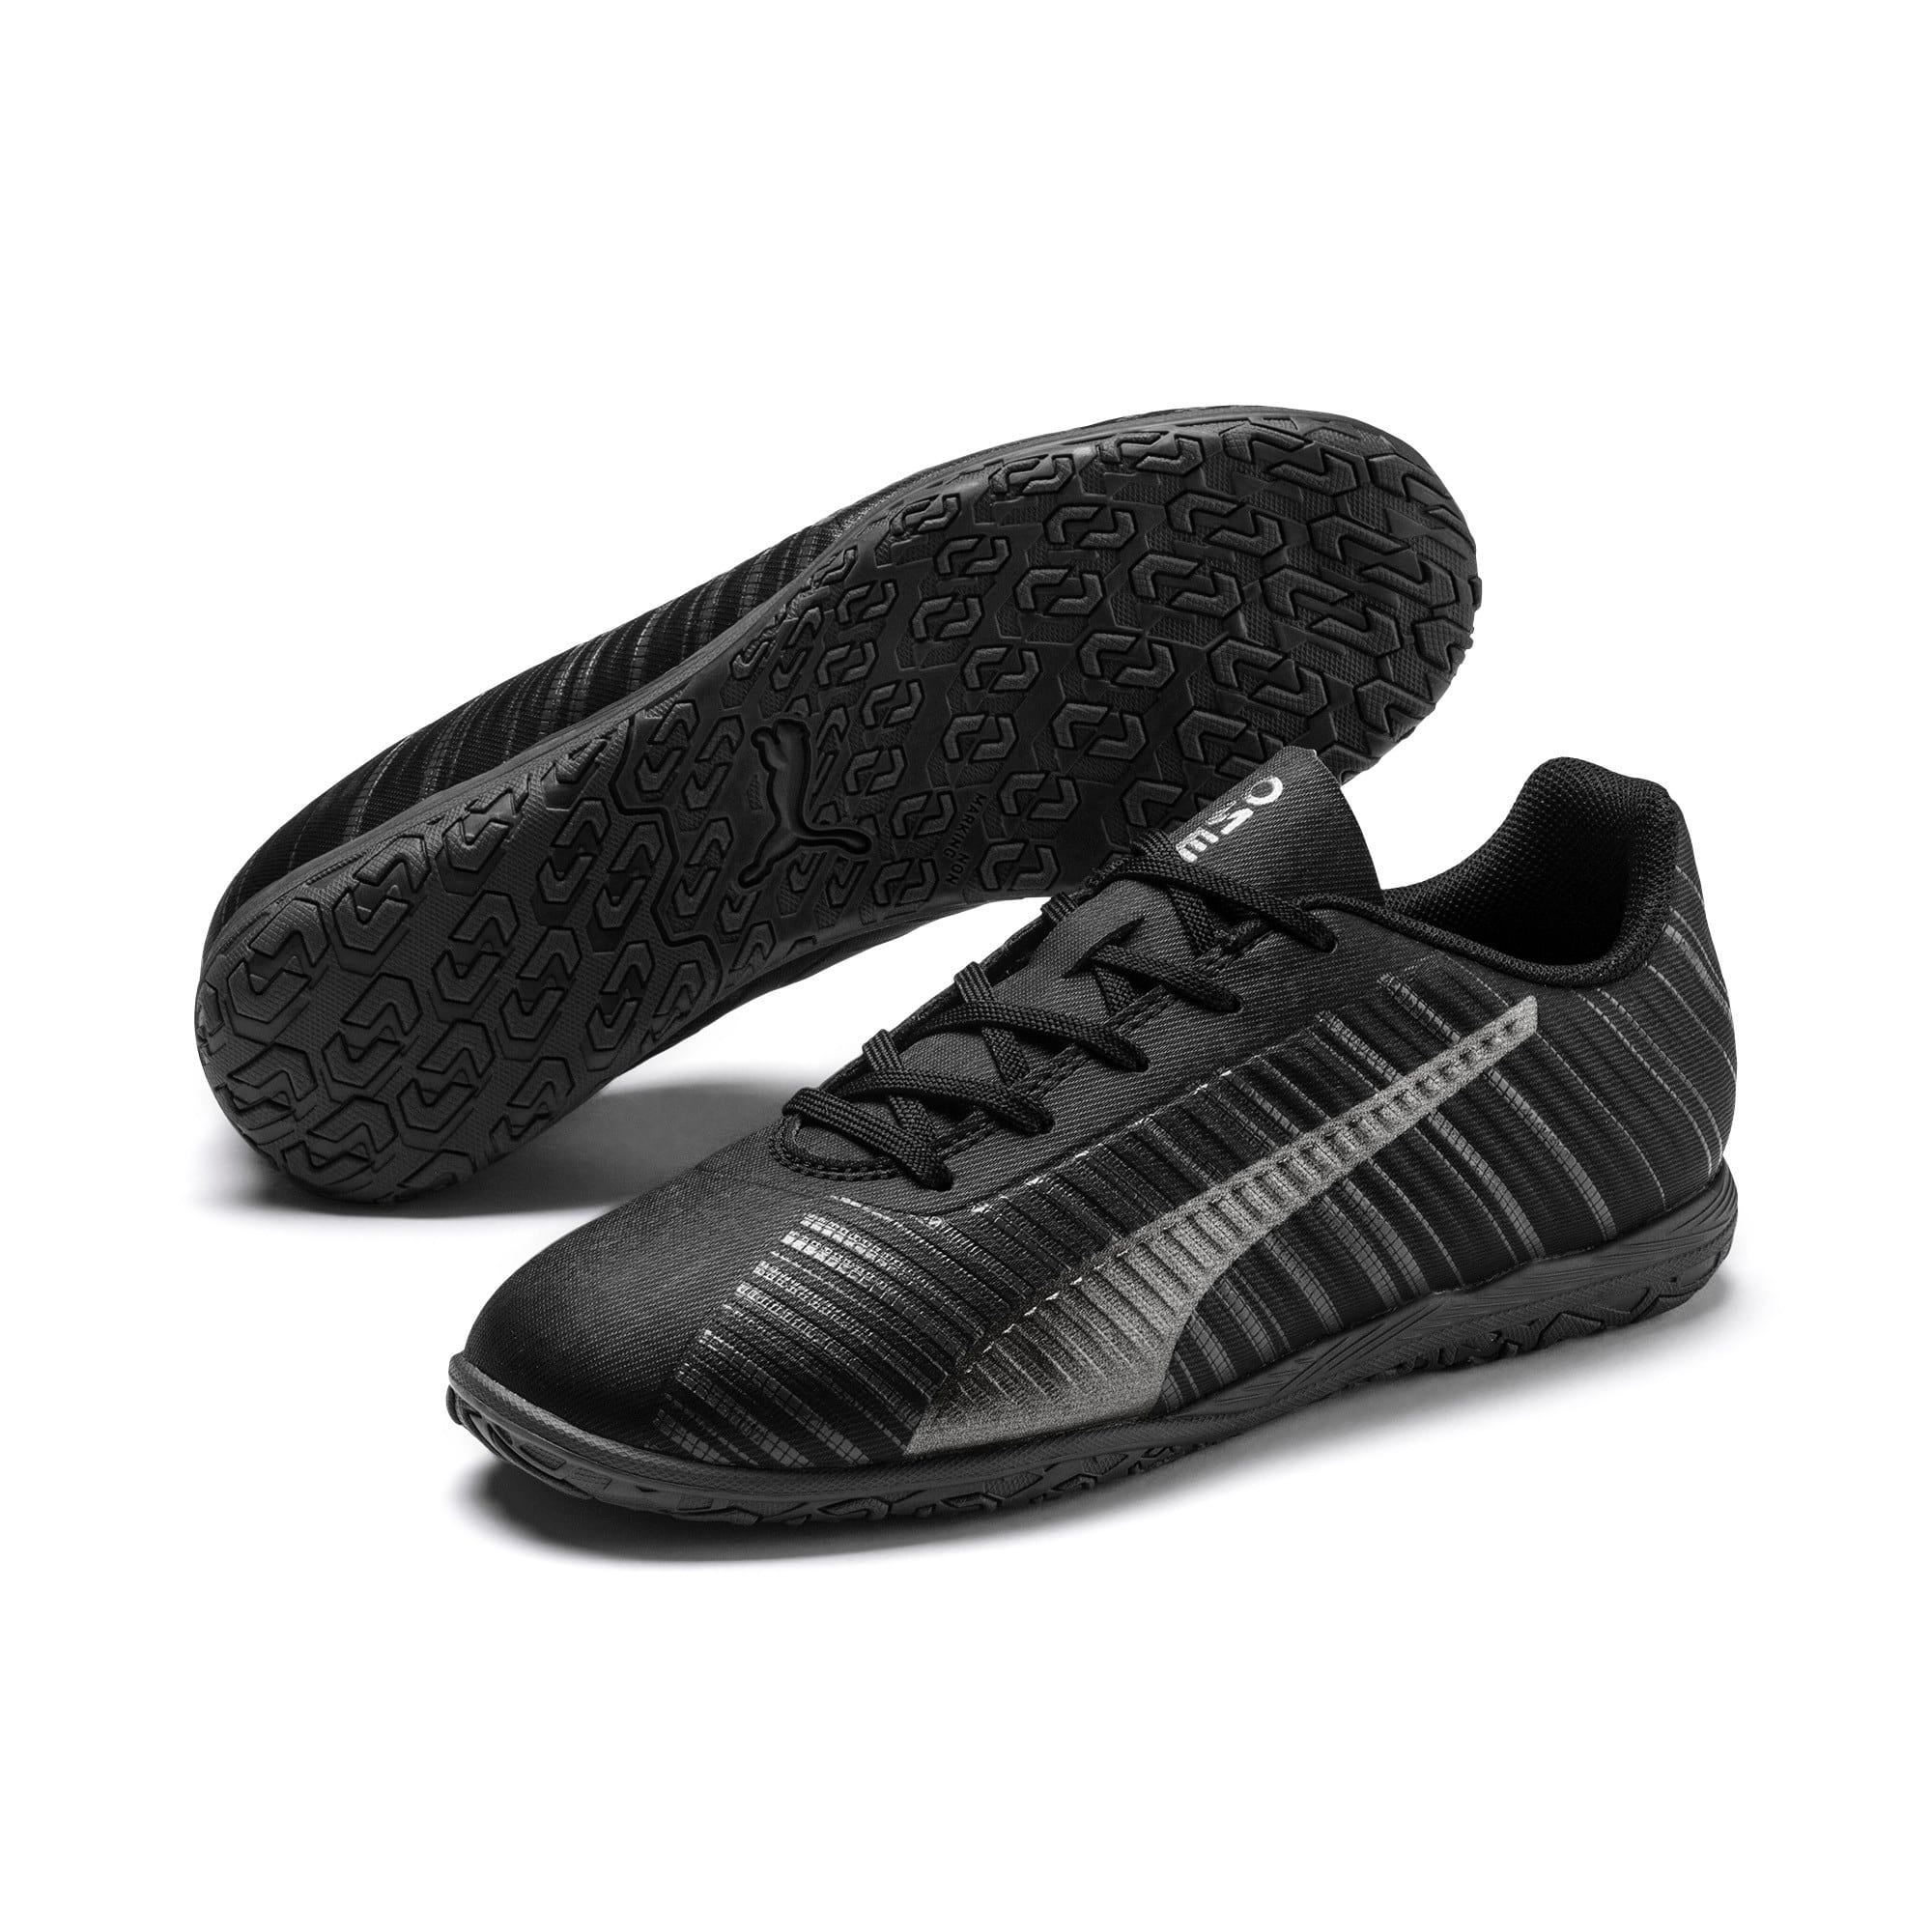 Thumbnail 2 of PUMA ONE 5.4 IT Youth Football Boots, Black-Black-Puma Aged Silver, medium